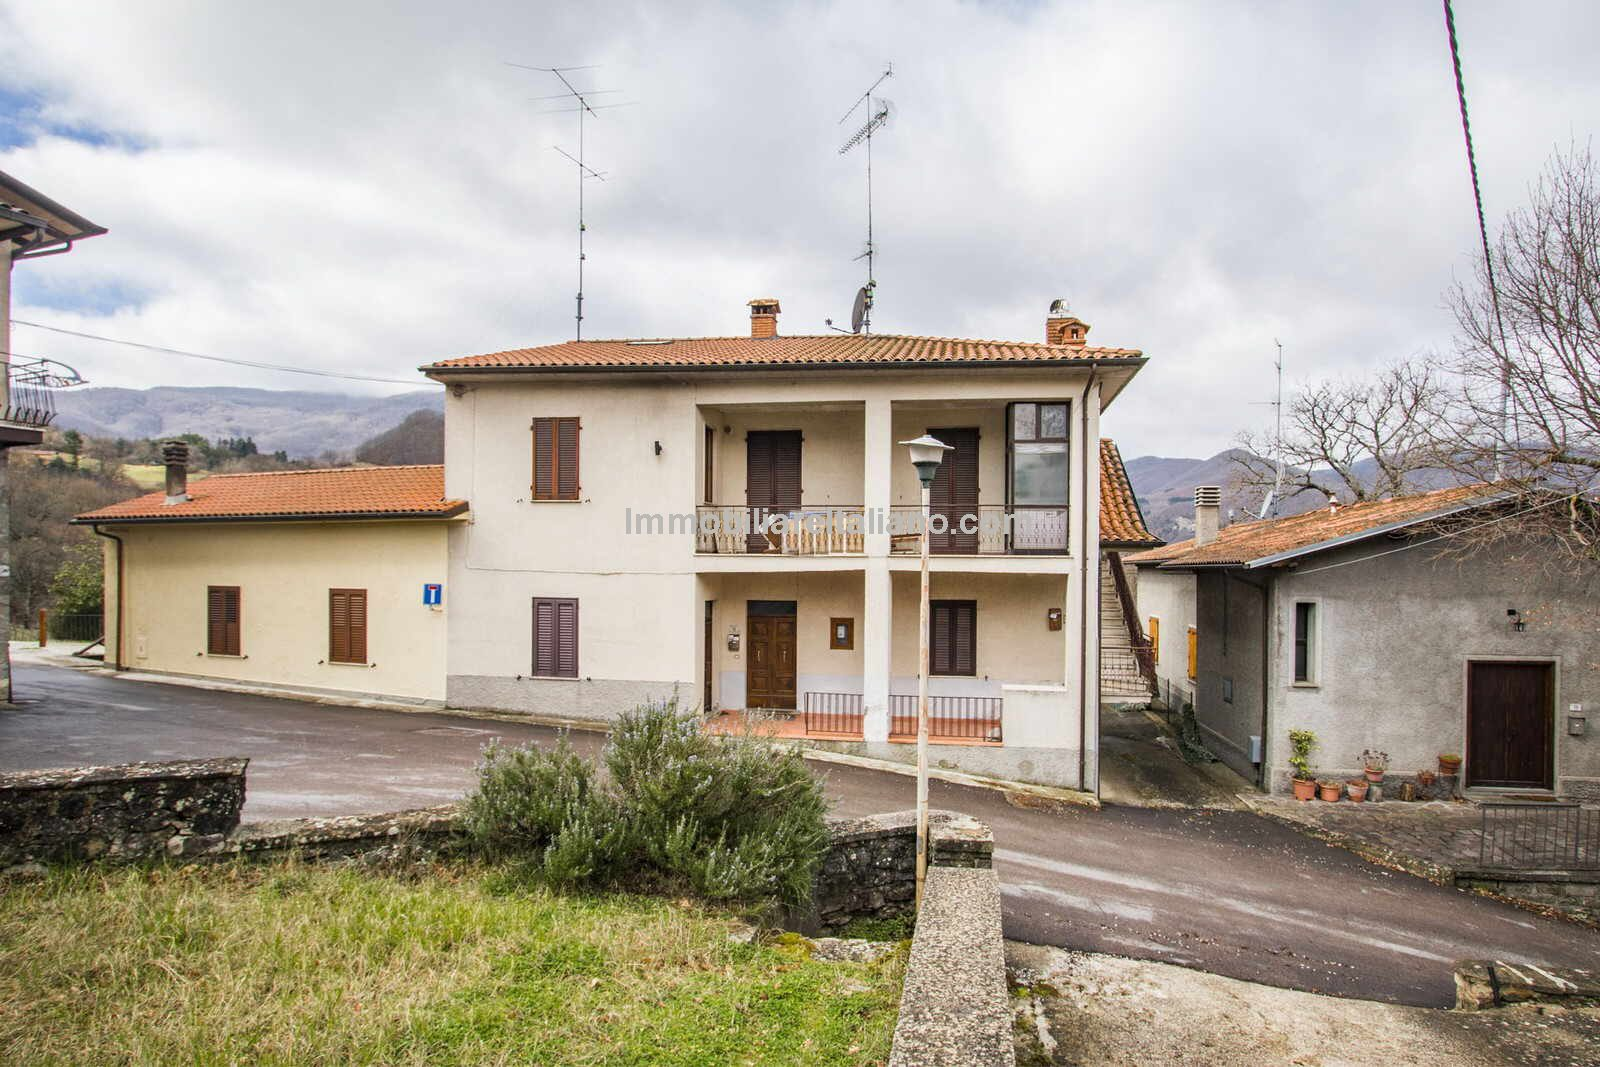 External view of fixer upper property in Tuscany